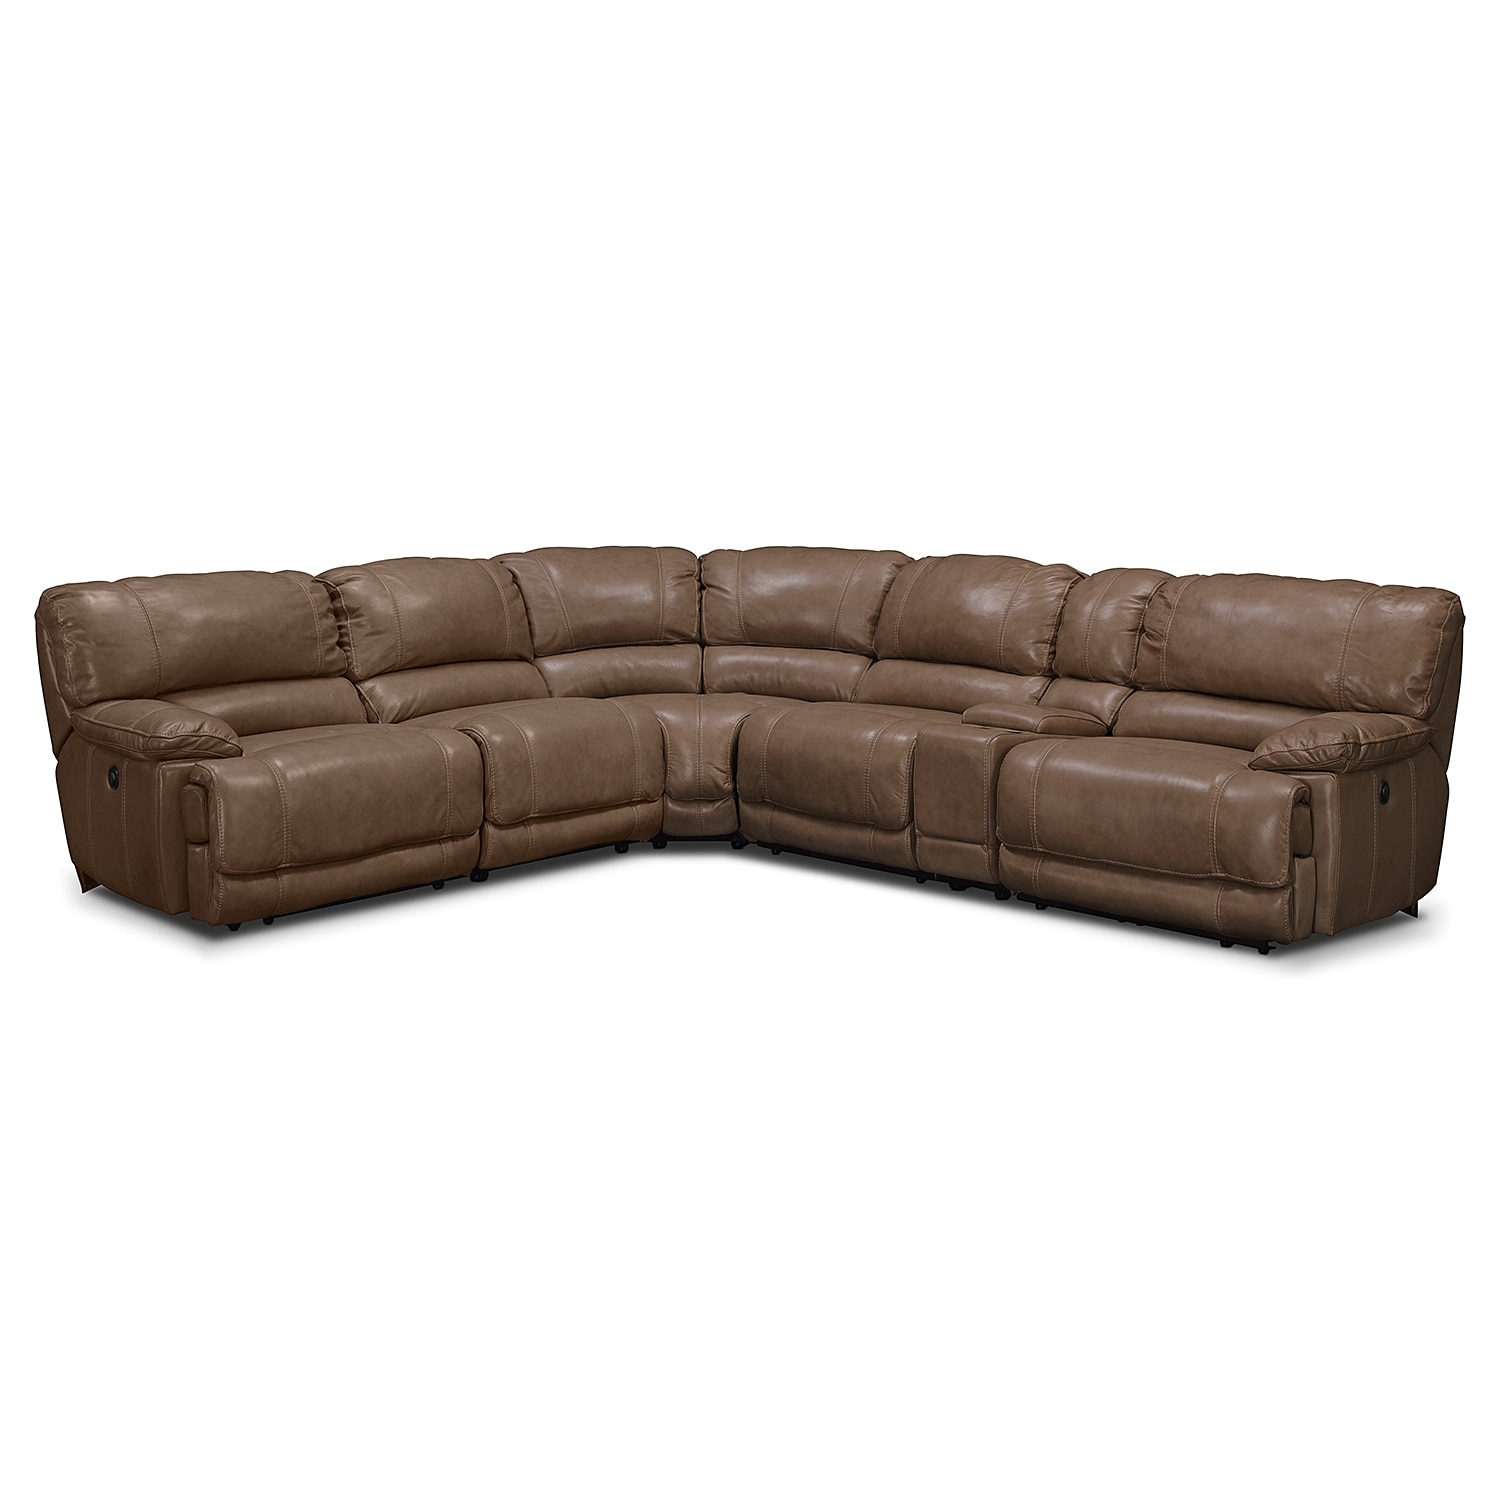 St. Malo 6-Piece Power Reclining Sectional with Modular Console - Taupe